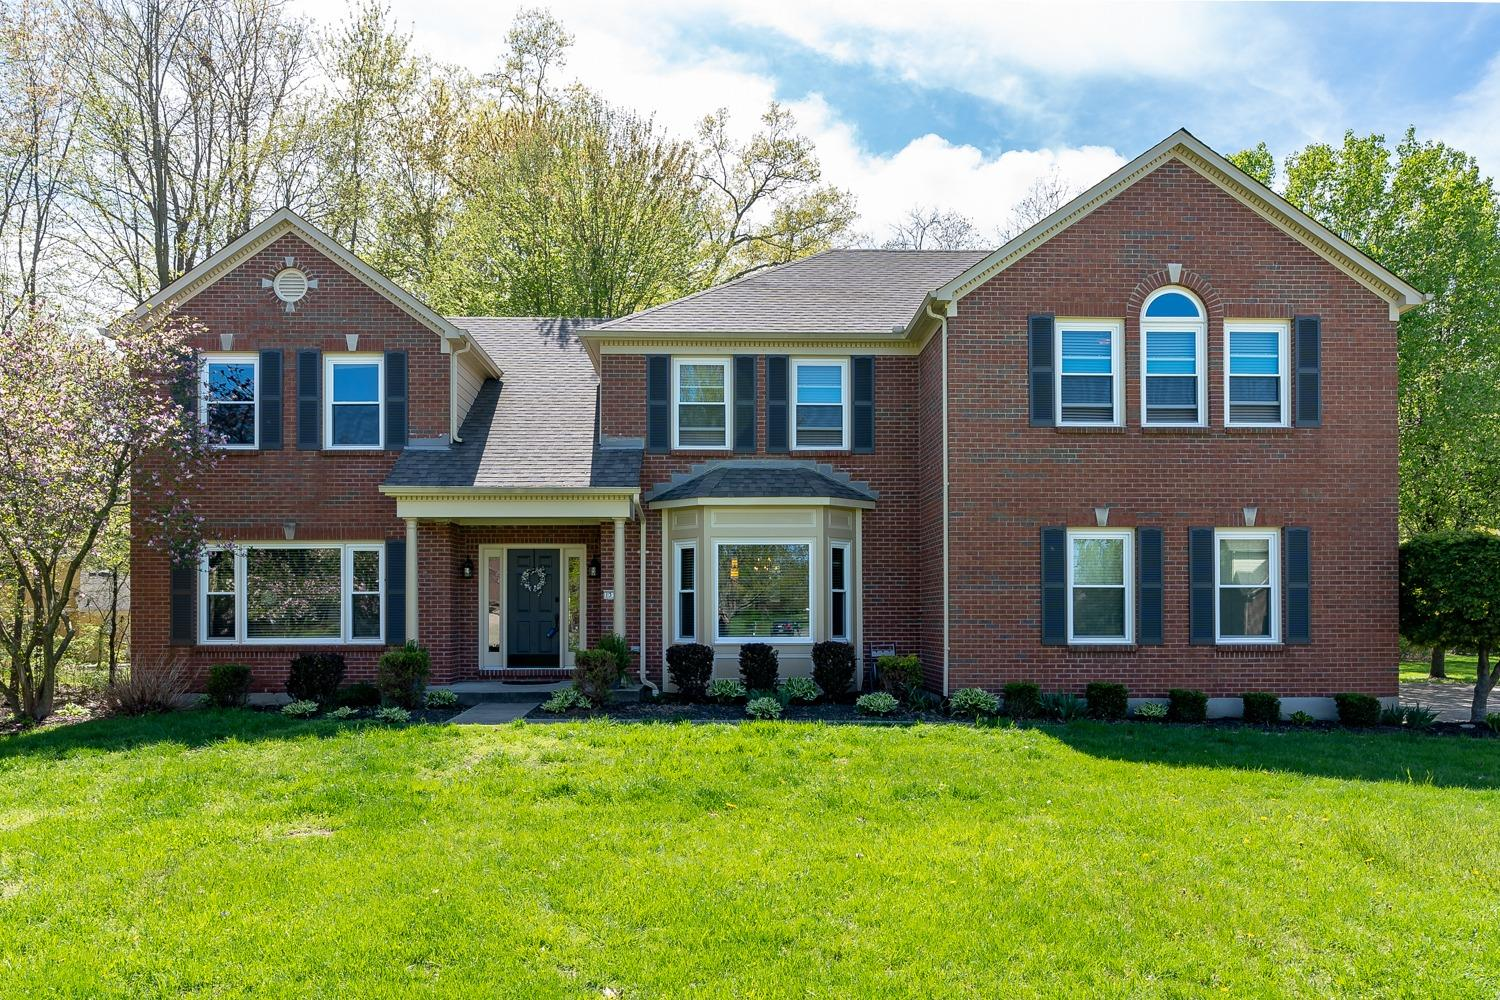 1312 Bedfordshire Dr Miami Twp OH